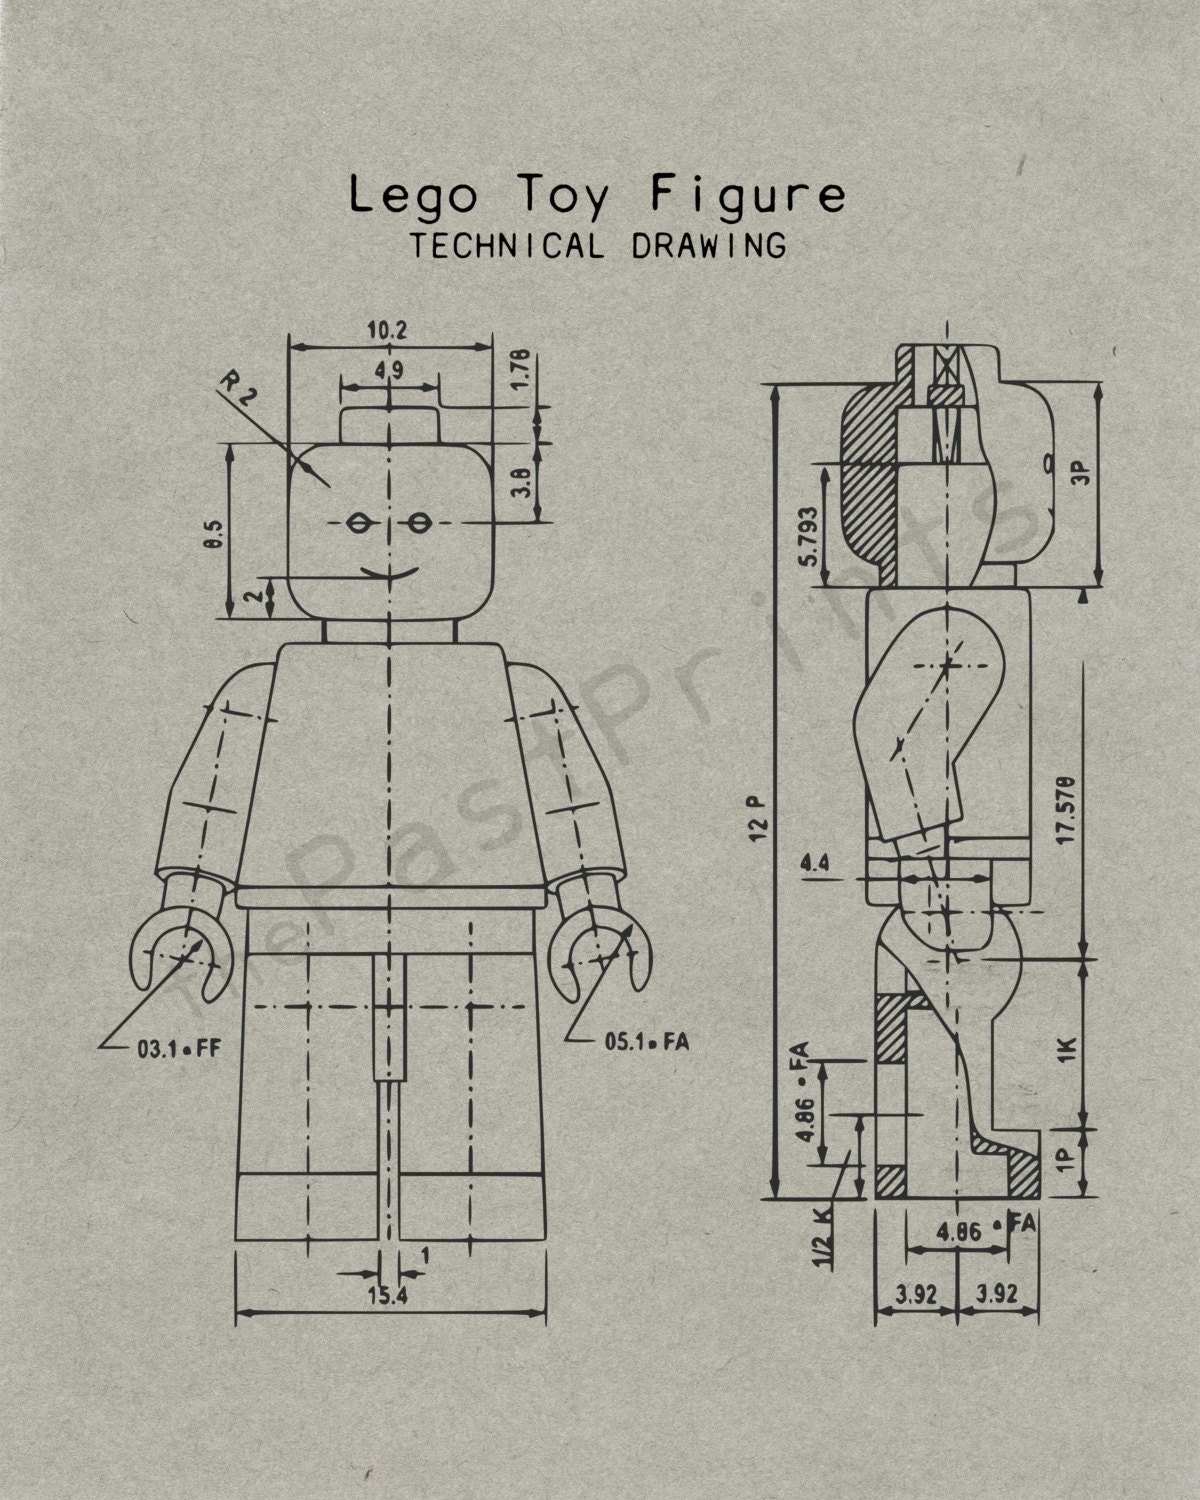 Lego printable lego figure techincal drawing lego art for Blueprint paper size